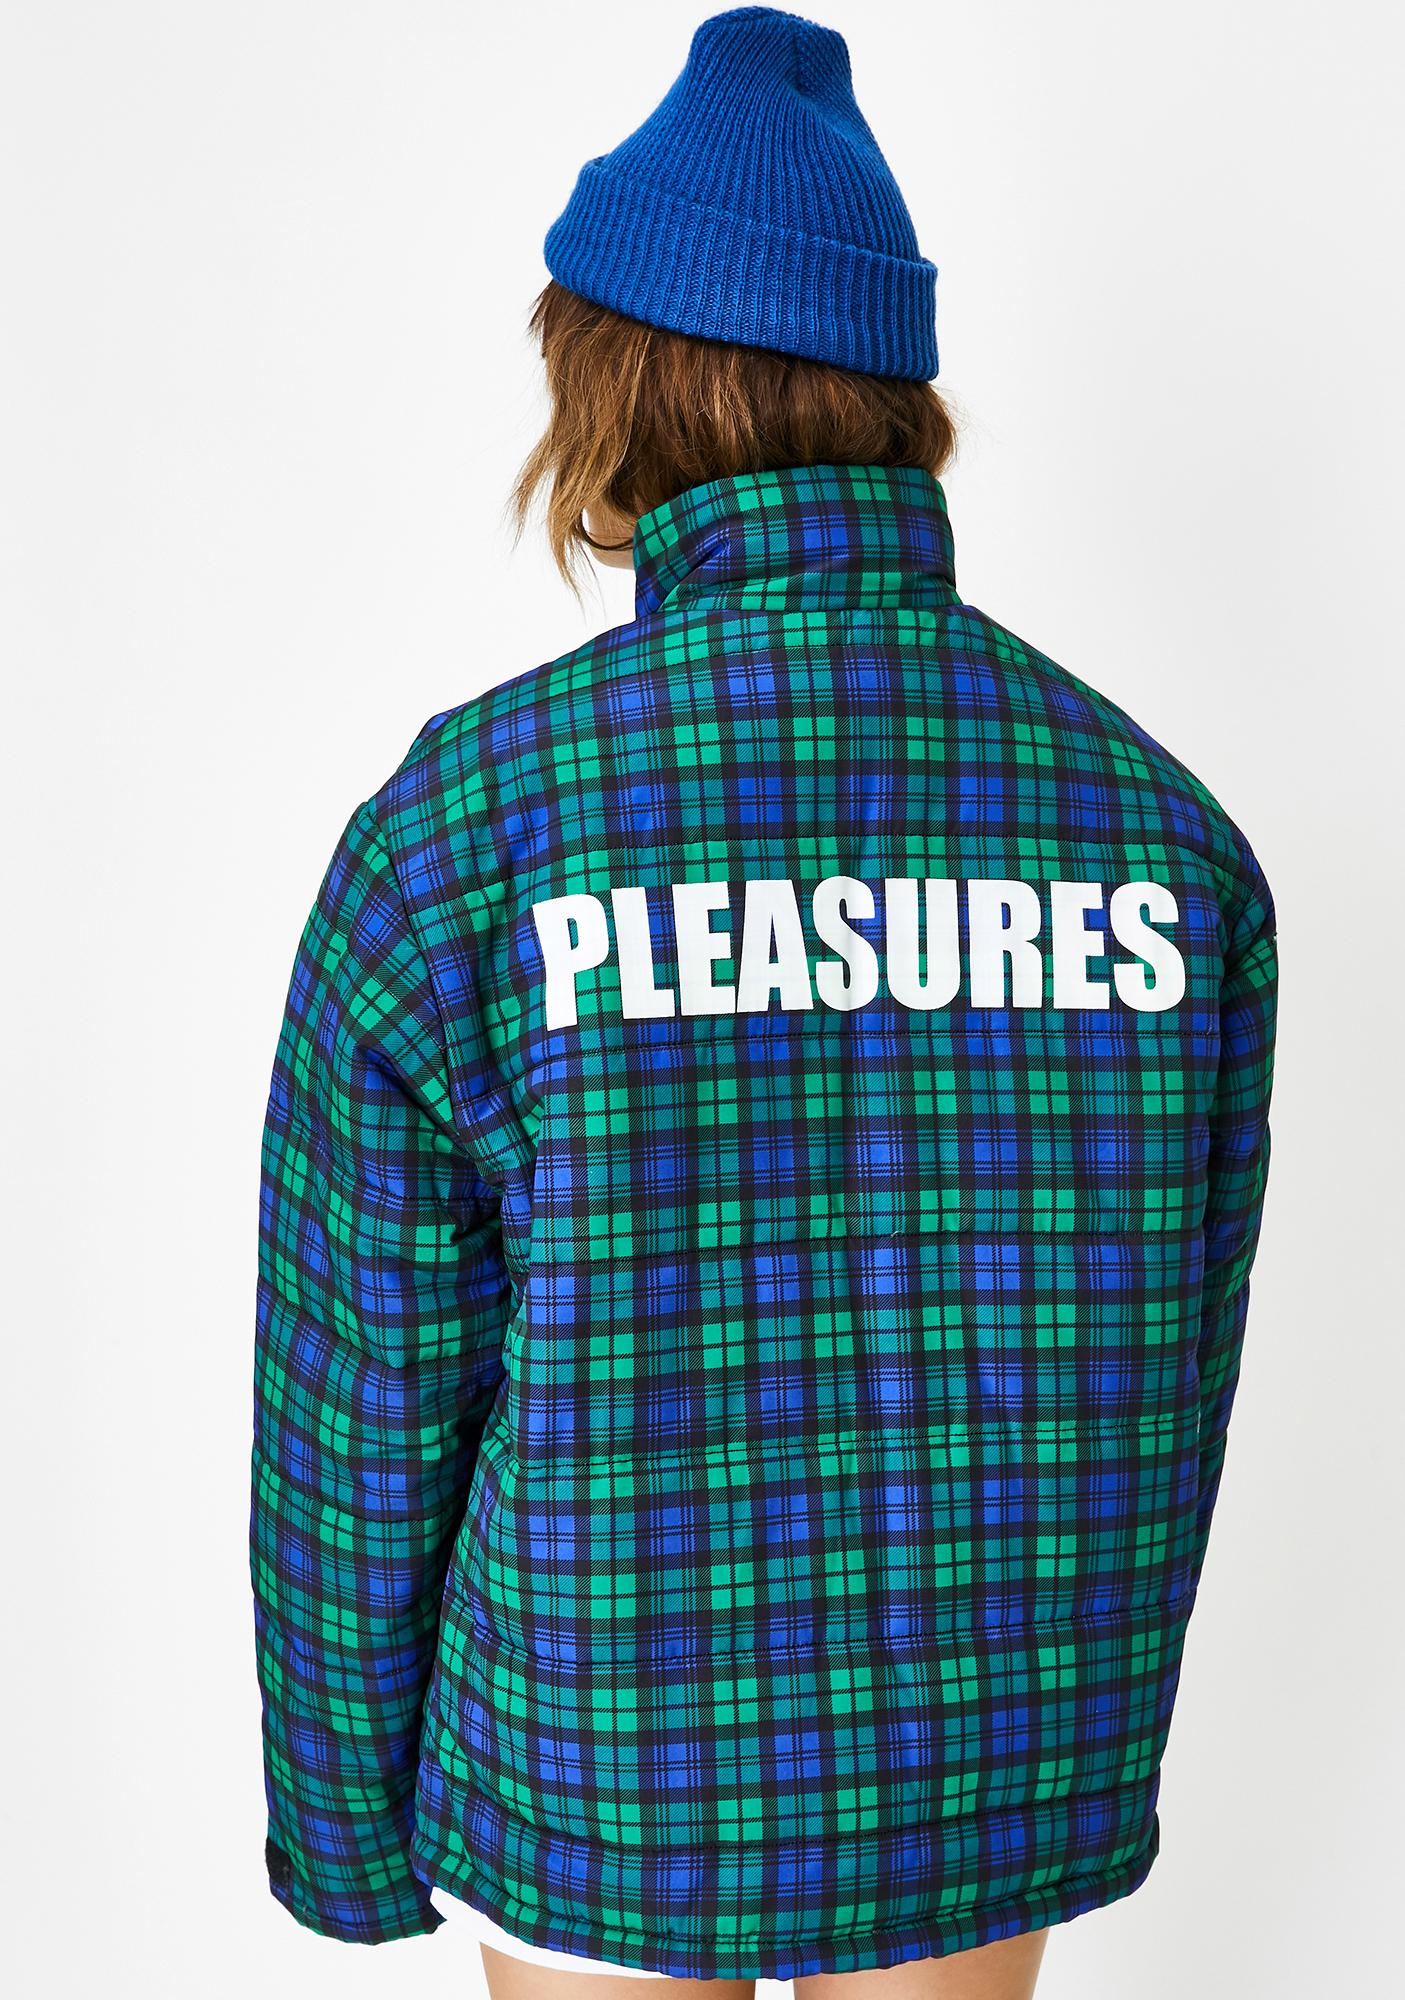 Pleasures Decades Plaid Puffer Jacket